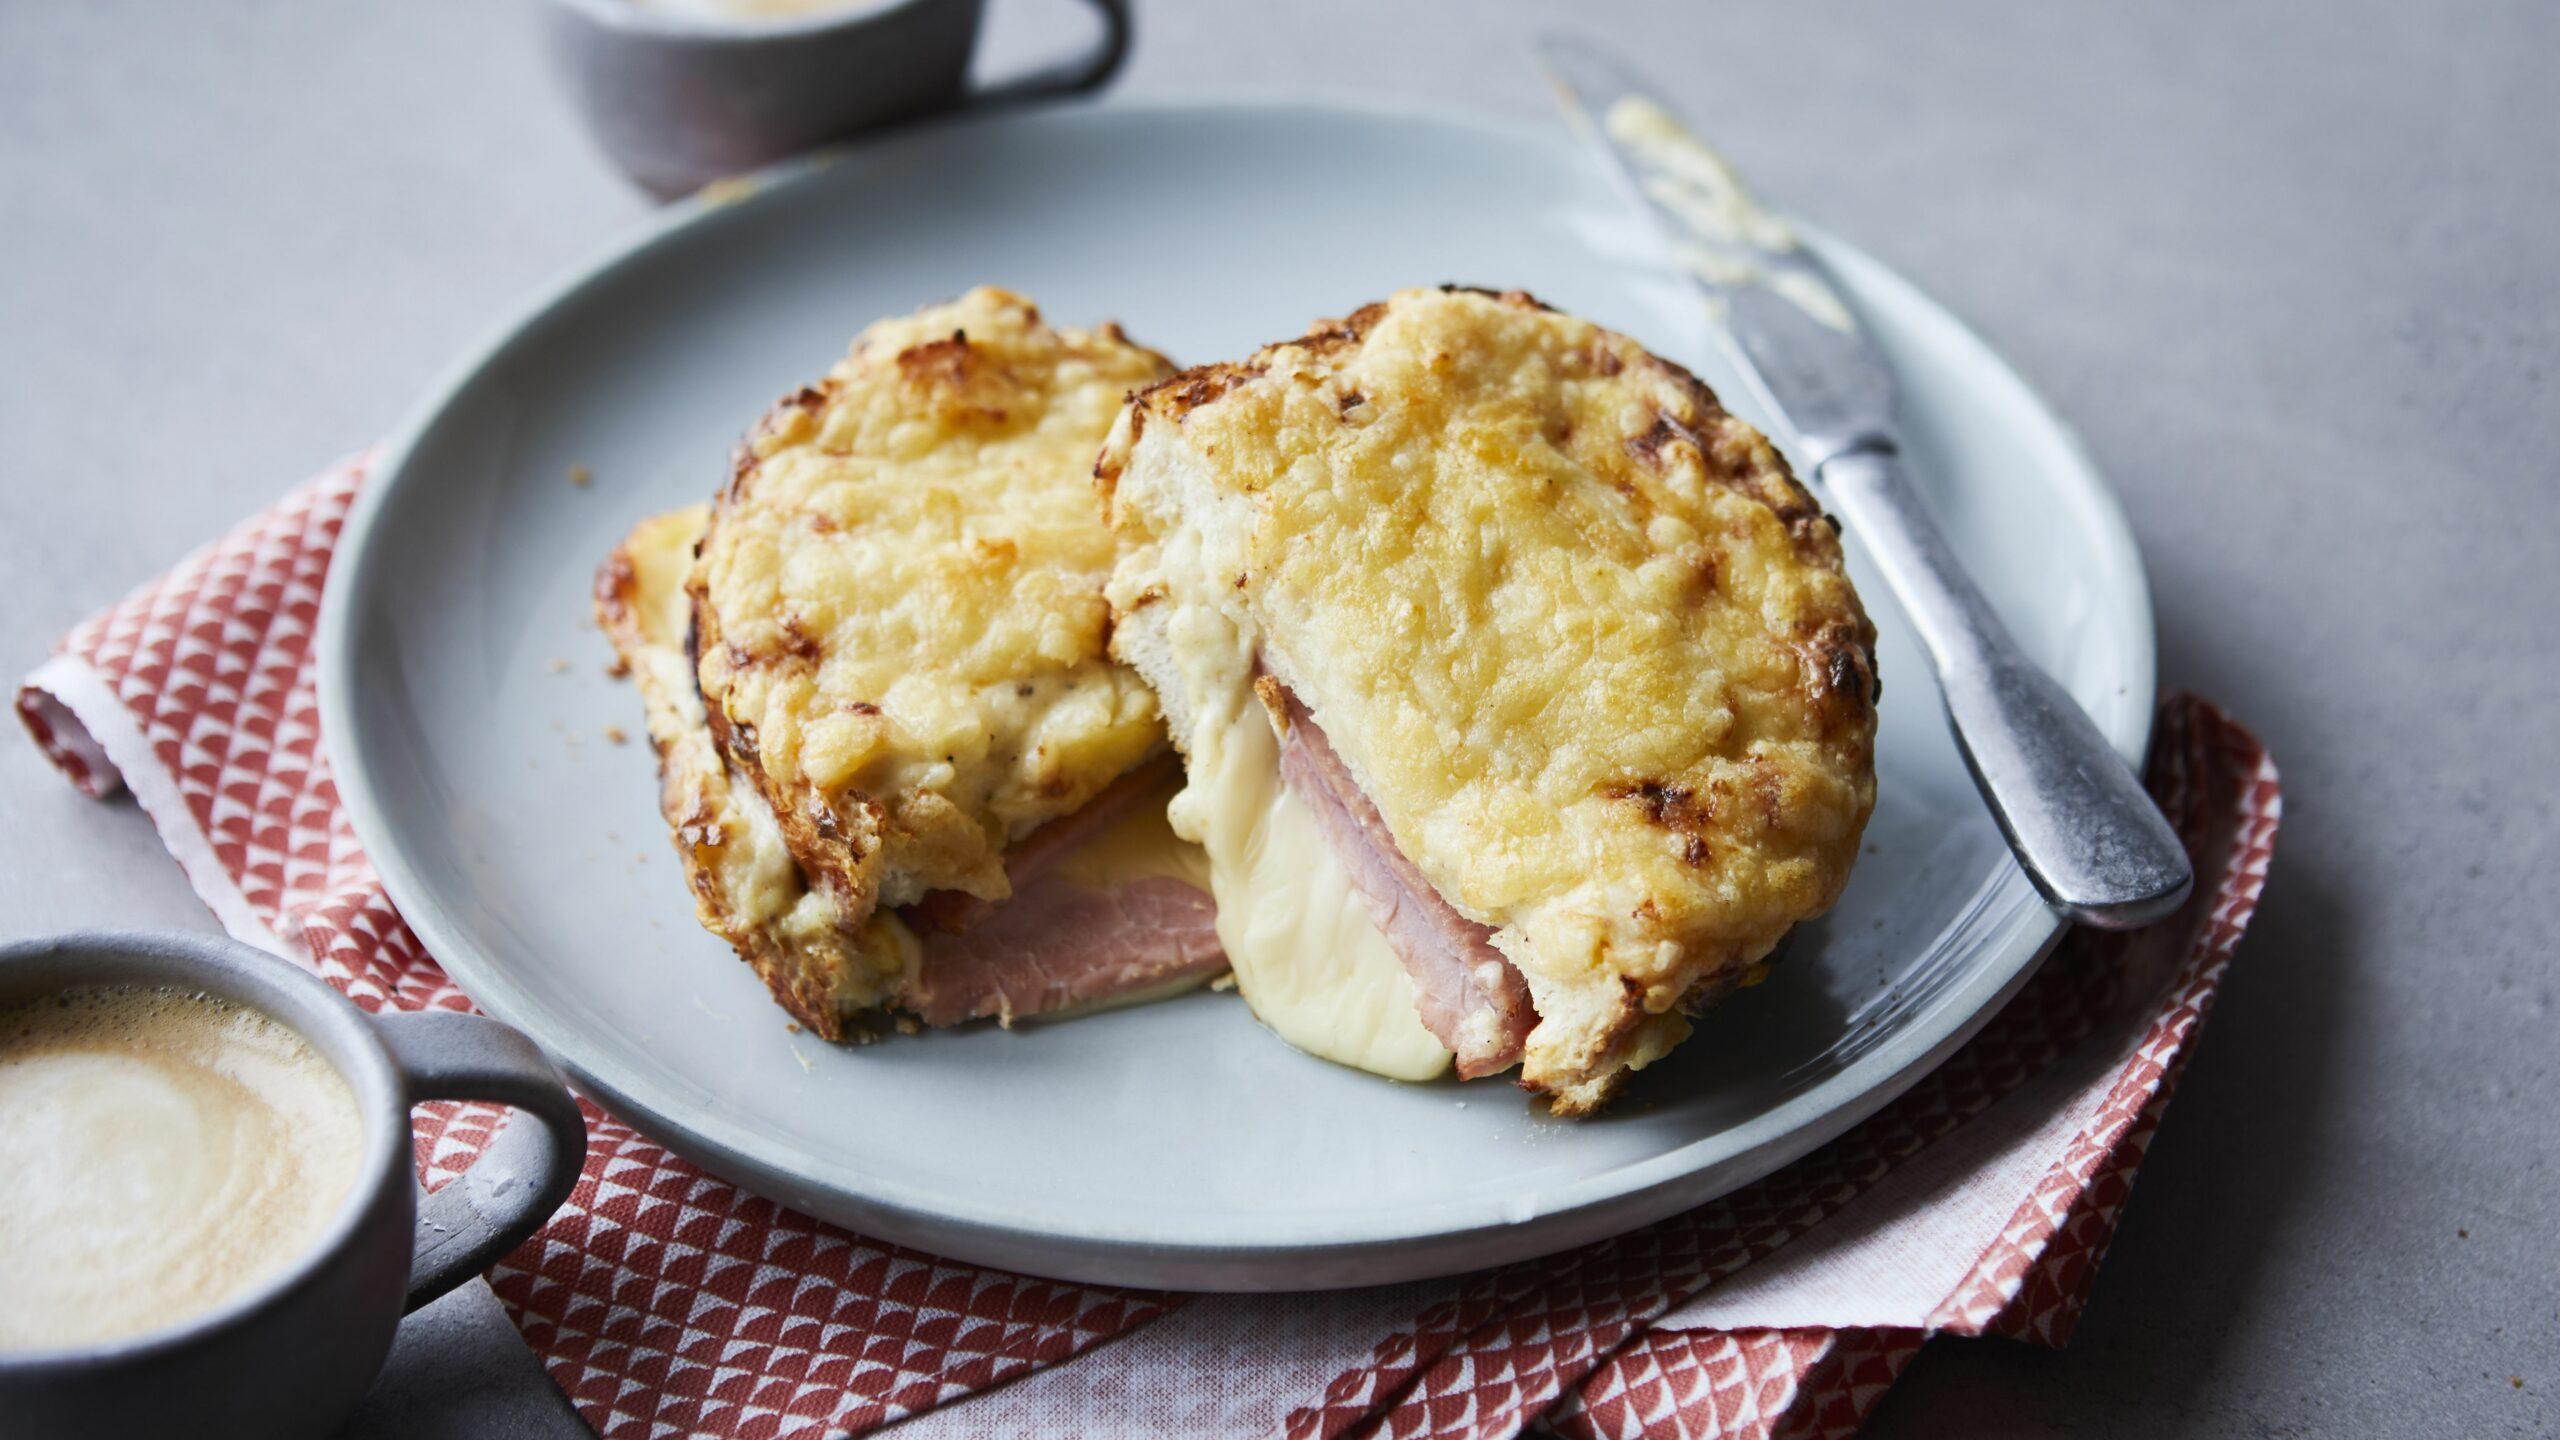 Croque monsieur - Sandwich Recipes Bbc Good Food